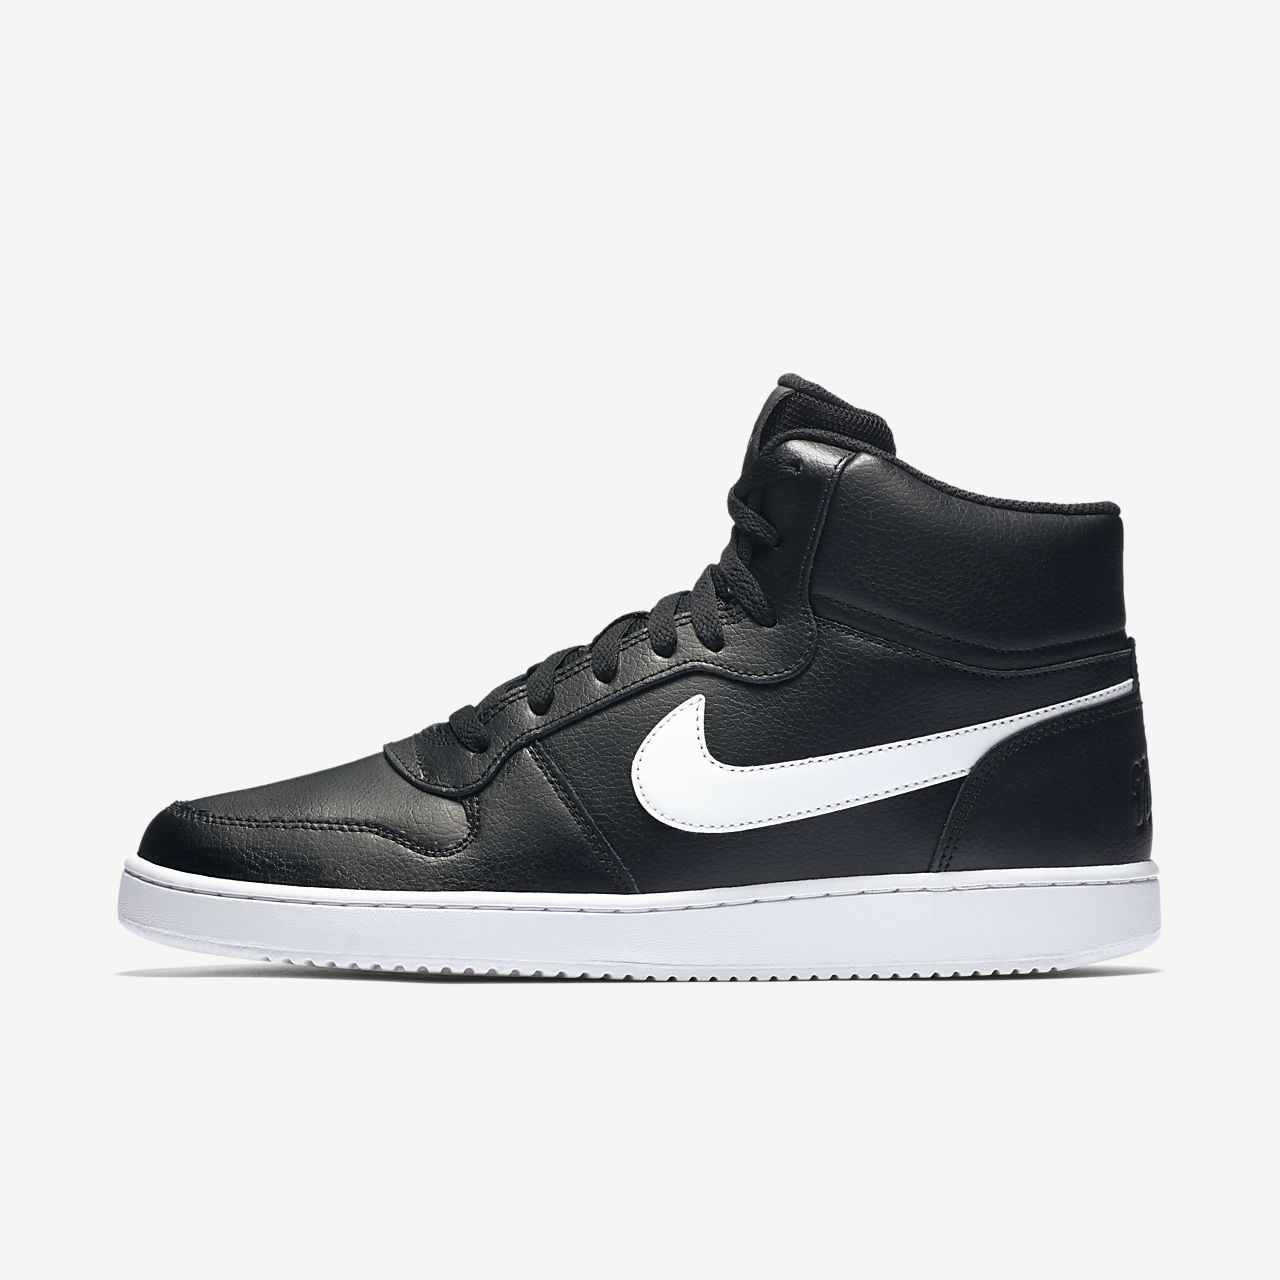 824c9fd534f03 Chaussure Nike Ebernon Mid pour Homme. Nike.com FR